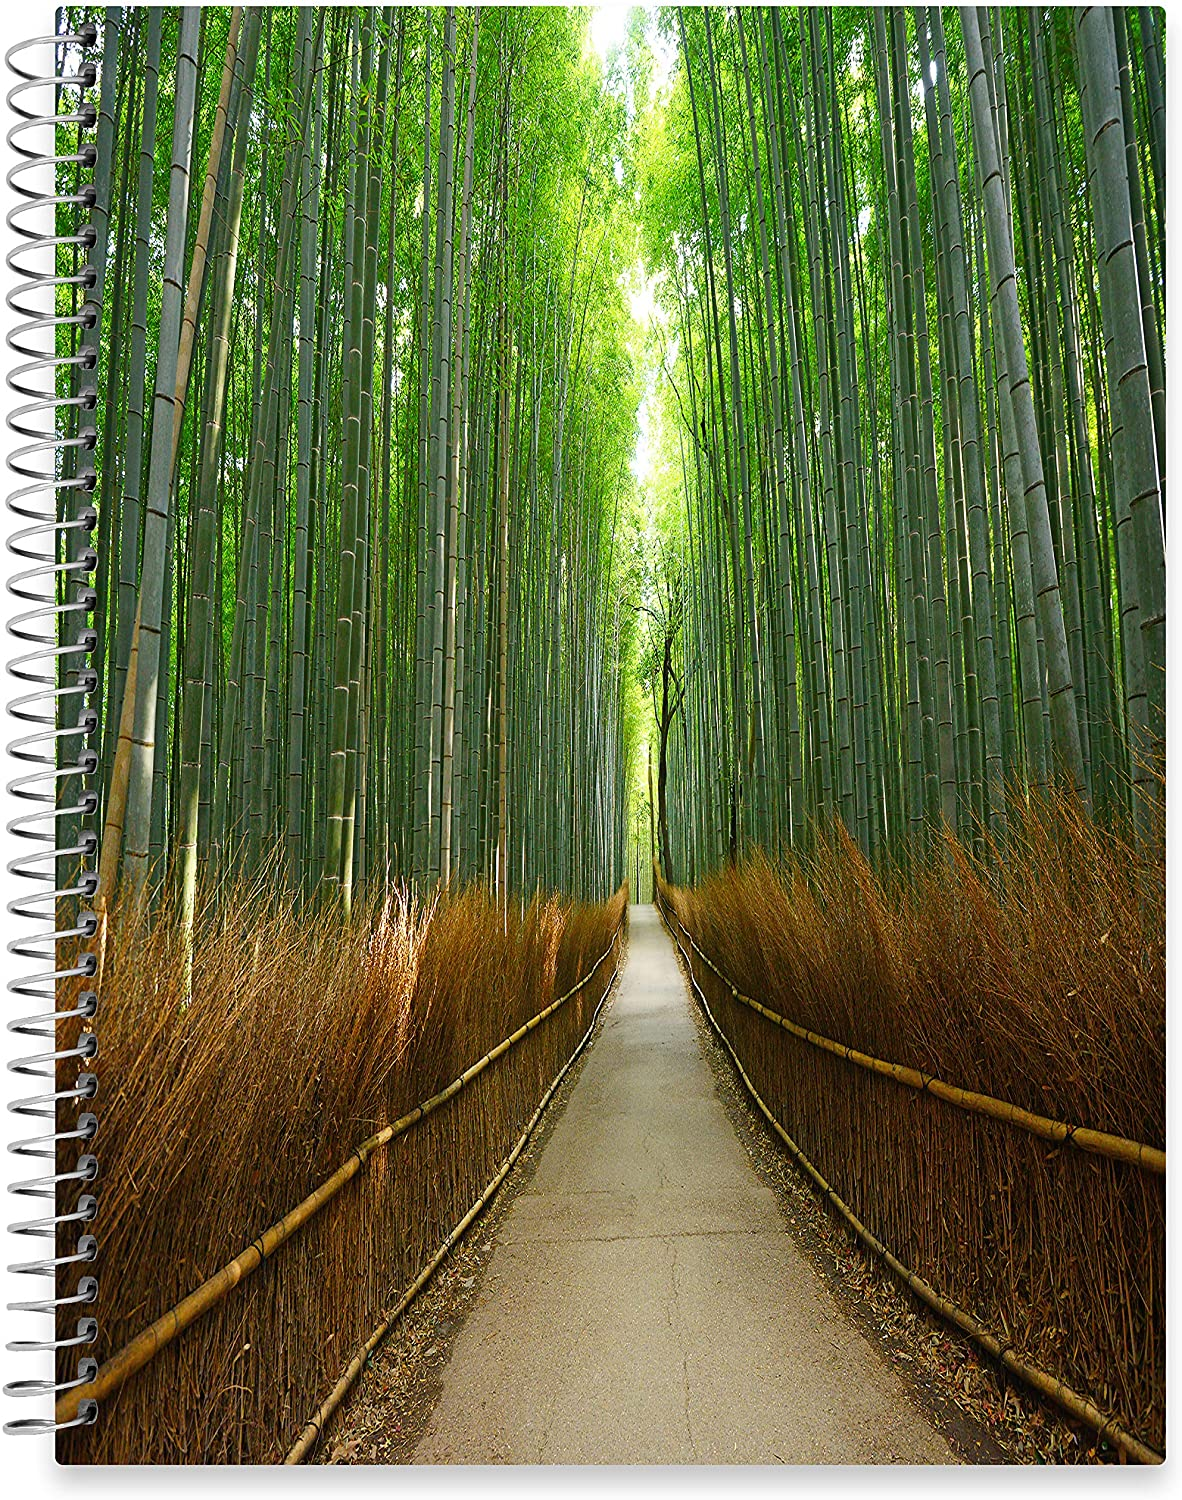 "July 2020 - June 2021 Softcover Planner - 8.5"" x 11"" - Bamboo Forest Cover"